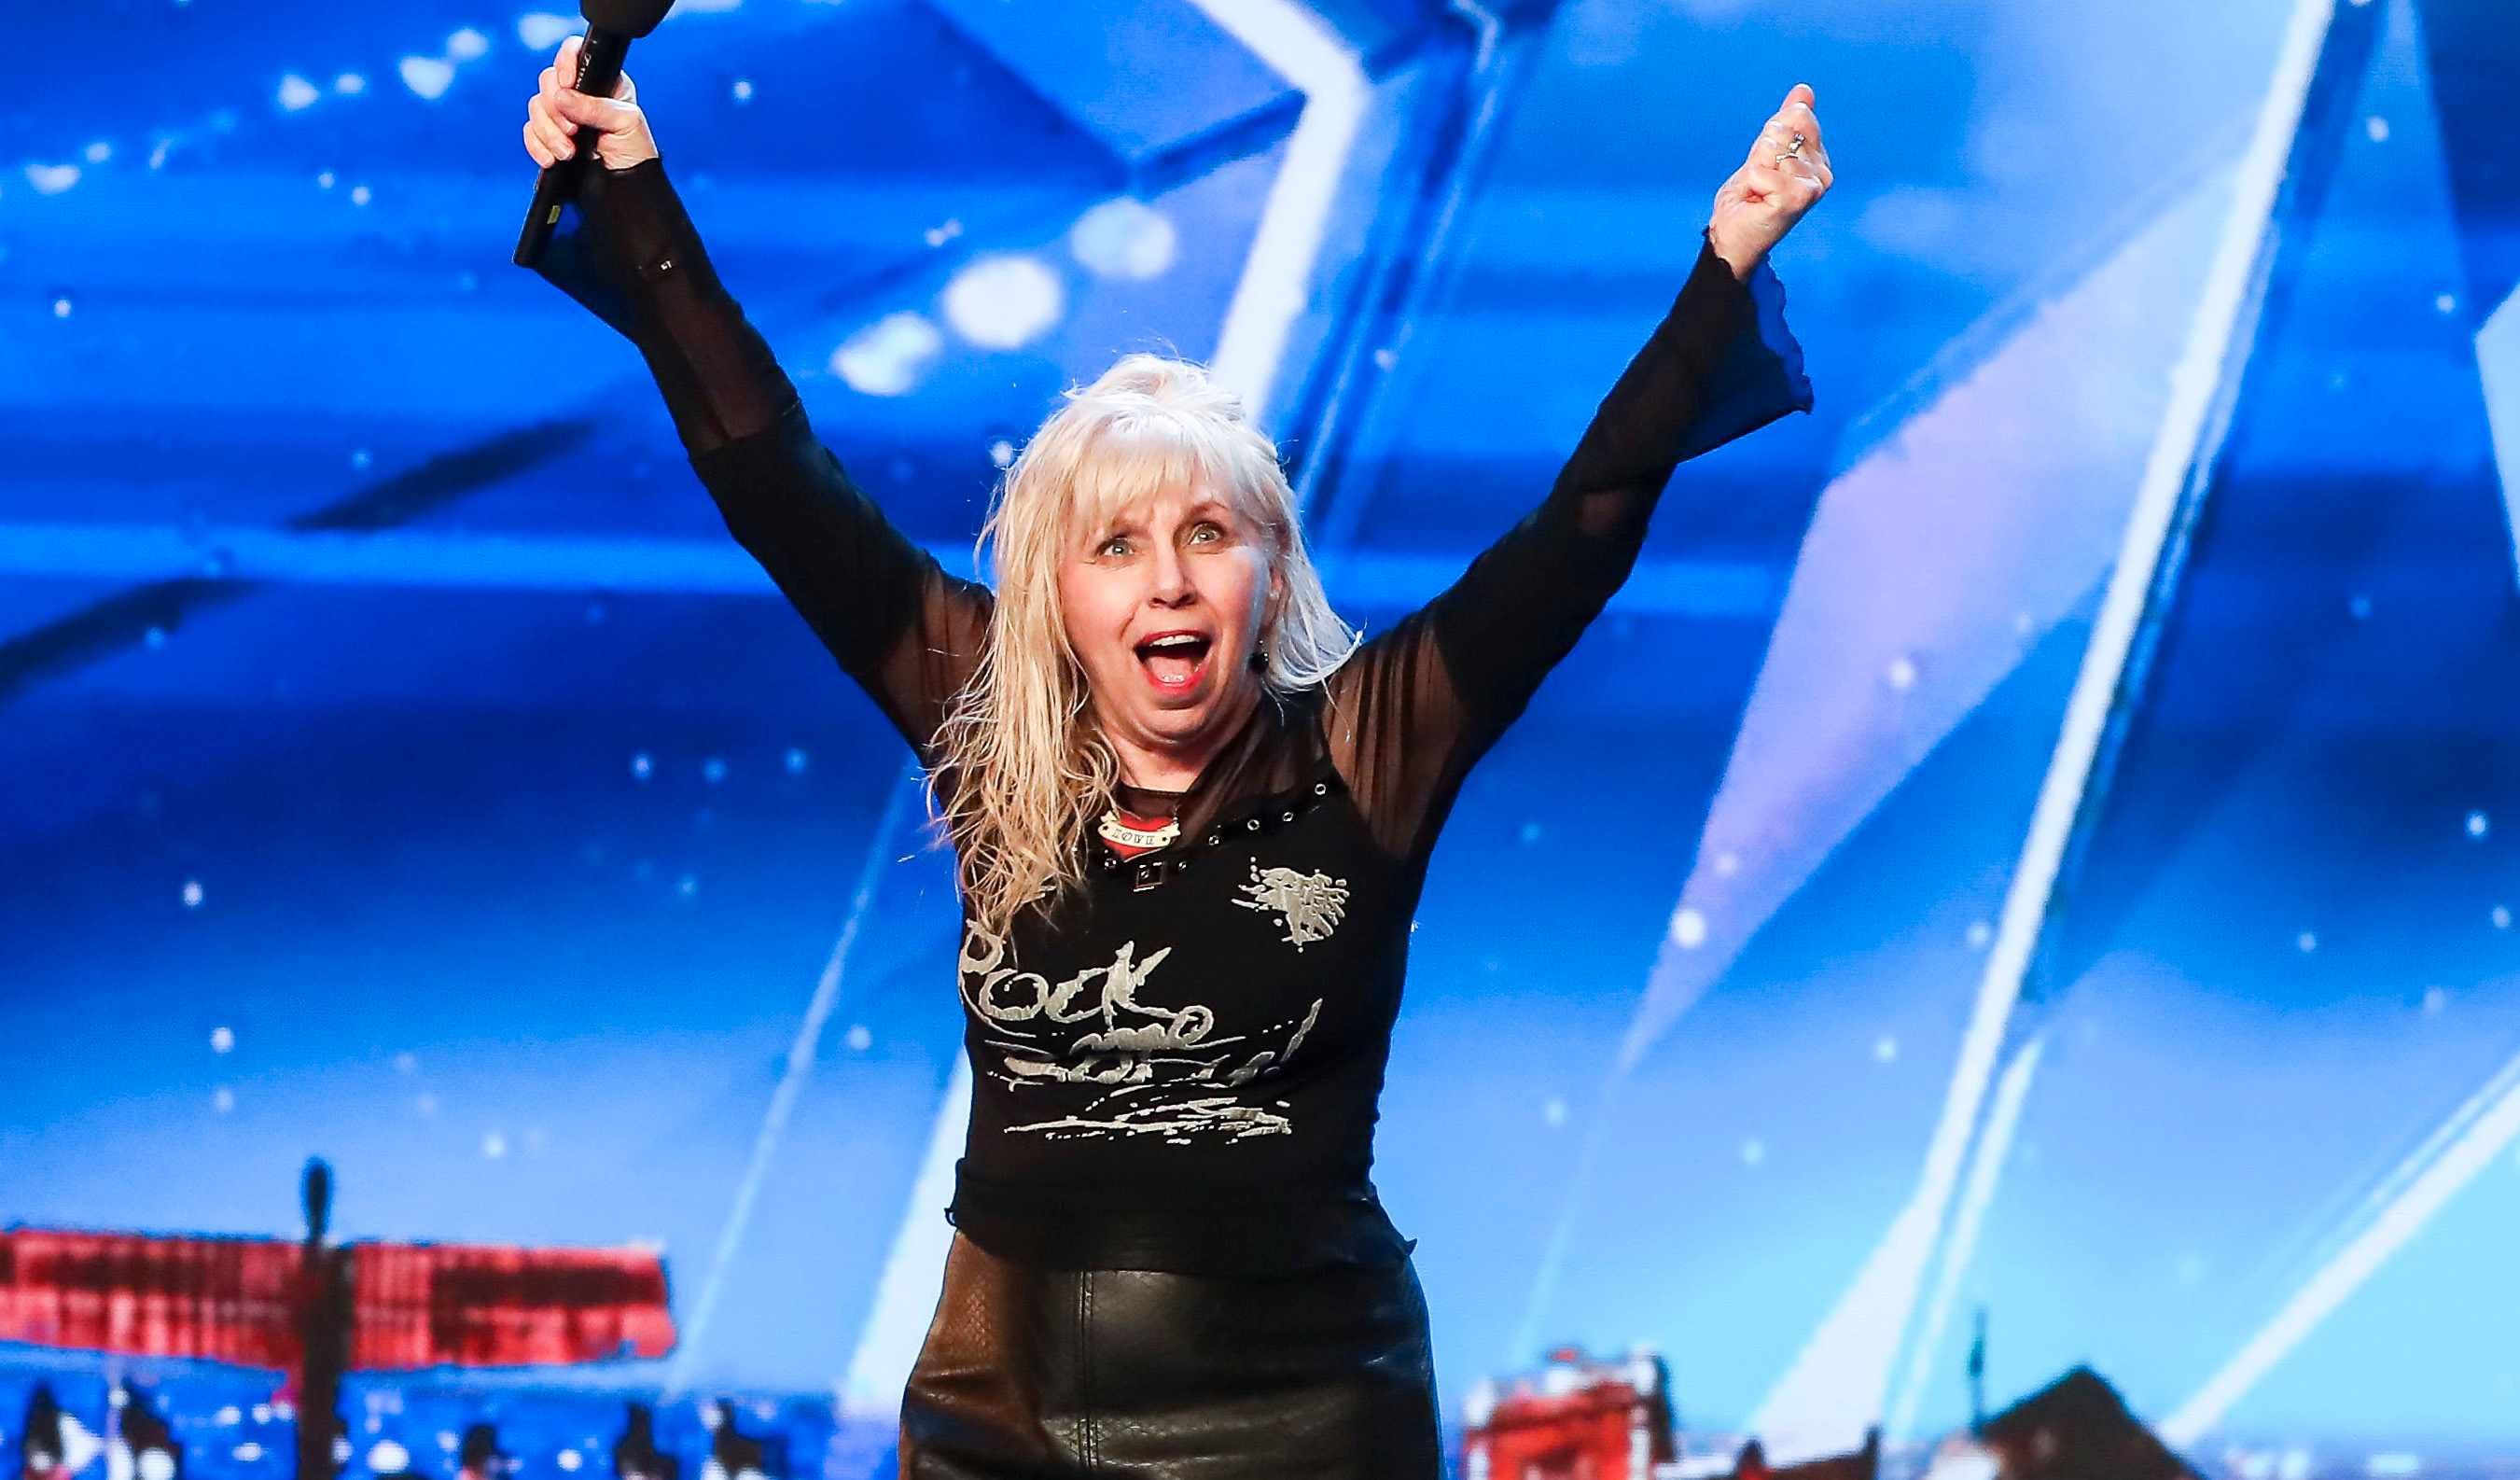 Britain's Got Talent - Jenny Darren